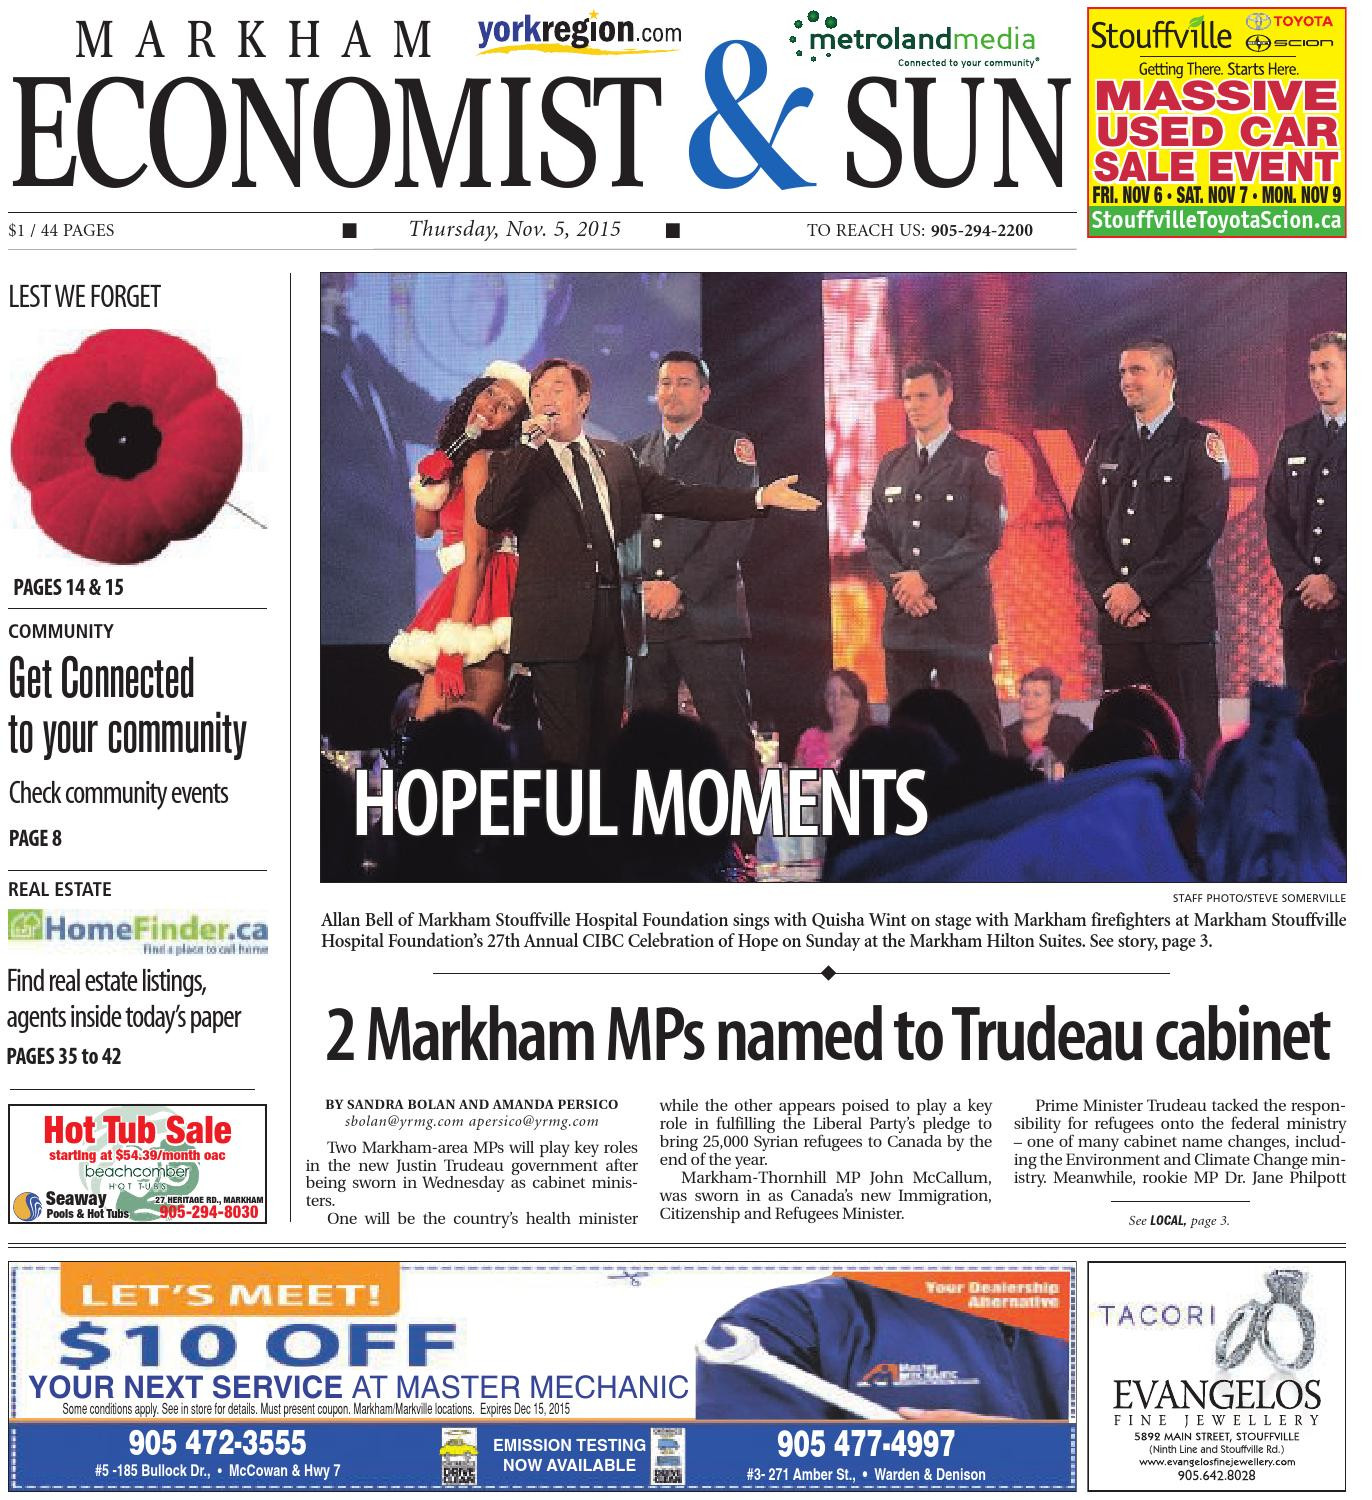 15 attractive Hardwood Flooring Store Markham 2021 free download hardwood flooring store markham of markham economist november 5 by markham economist sun issuu intended for page 1